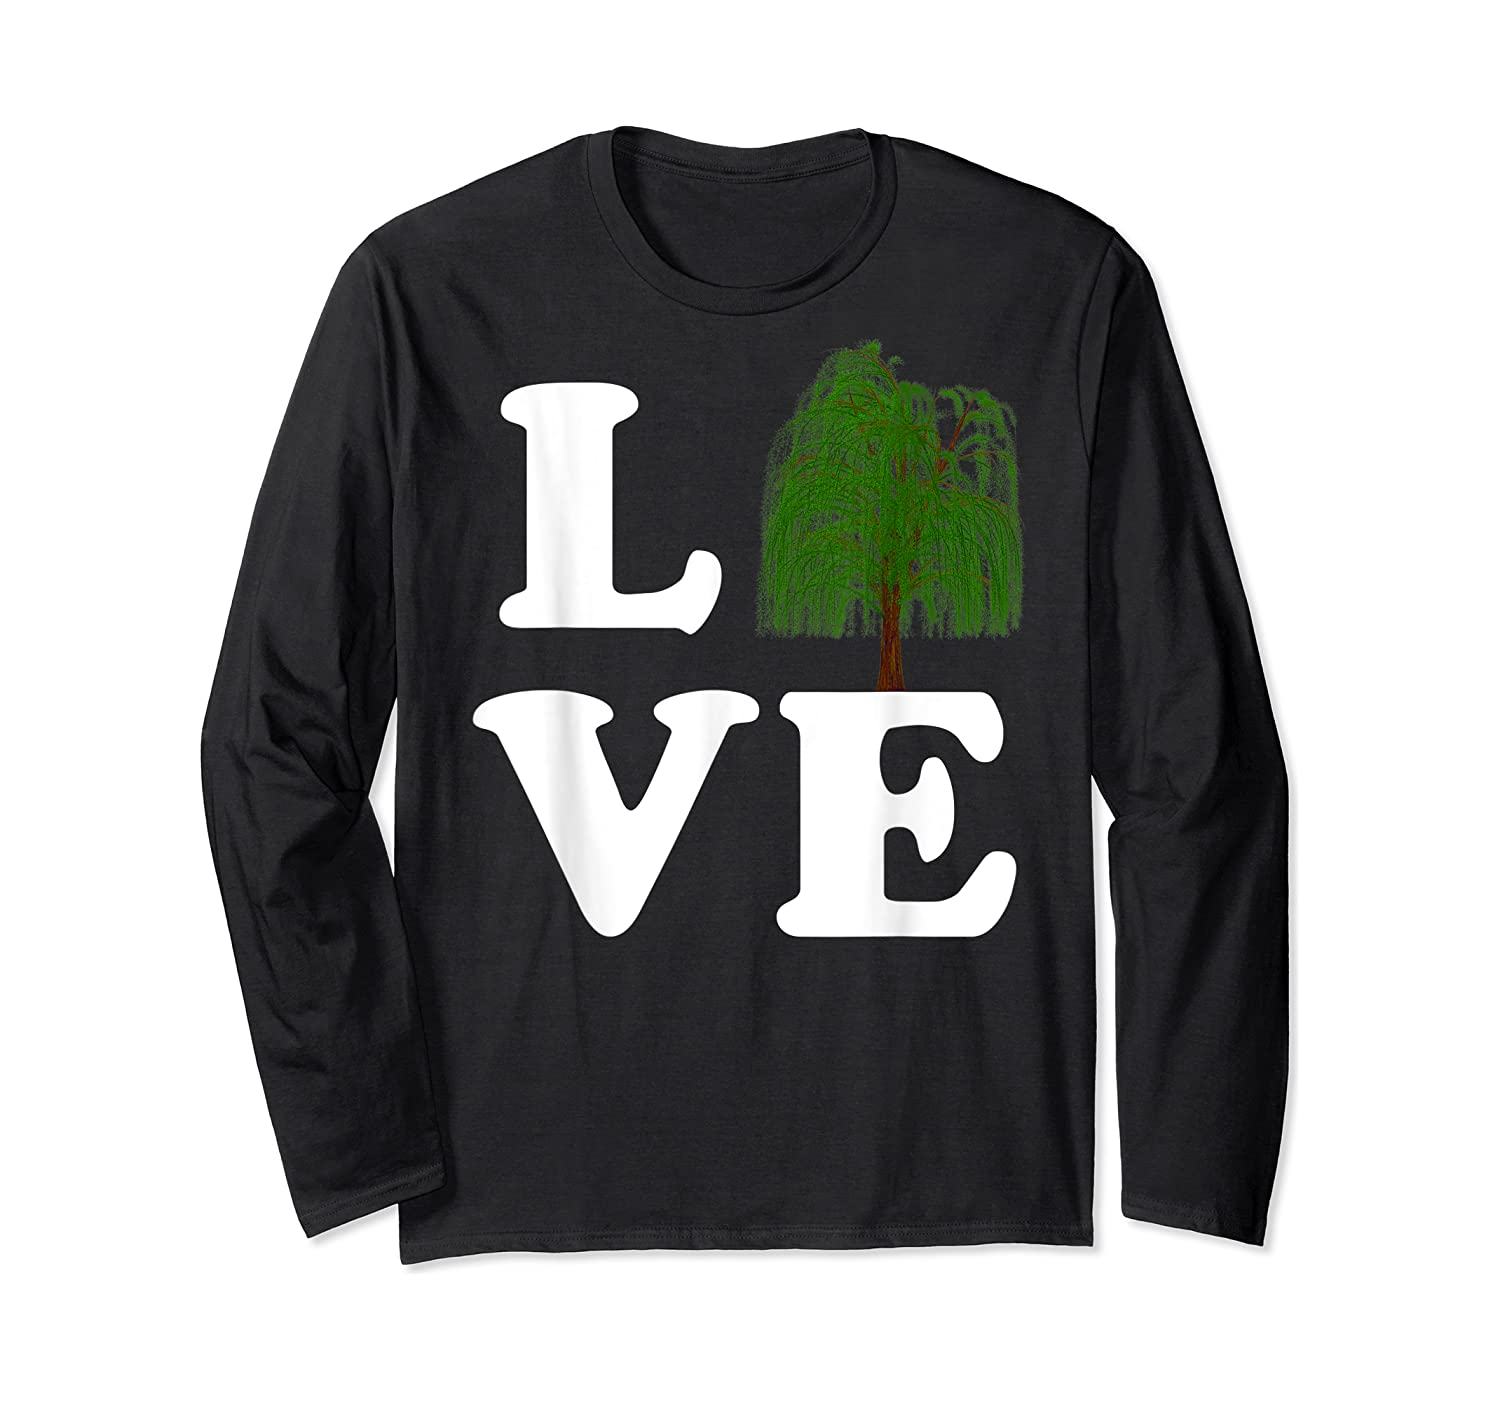 Love Trees Shirt Earth Day Weeping Willow Tee T-shirt Long Sleeve T-shirt